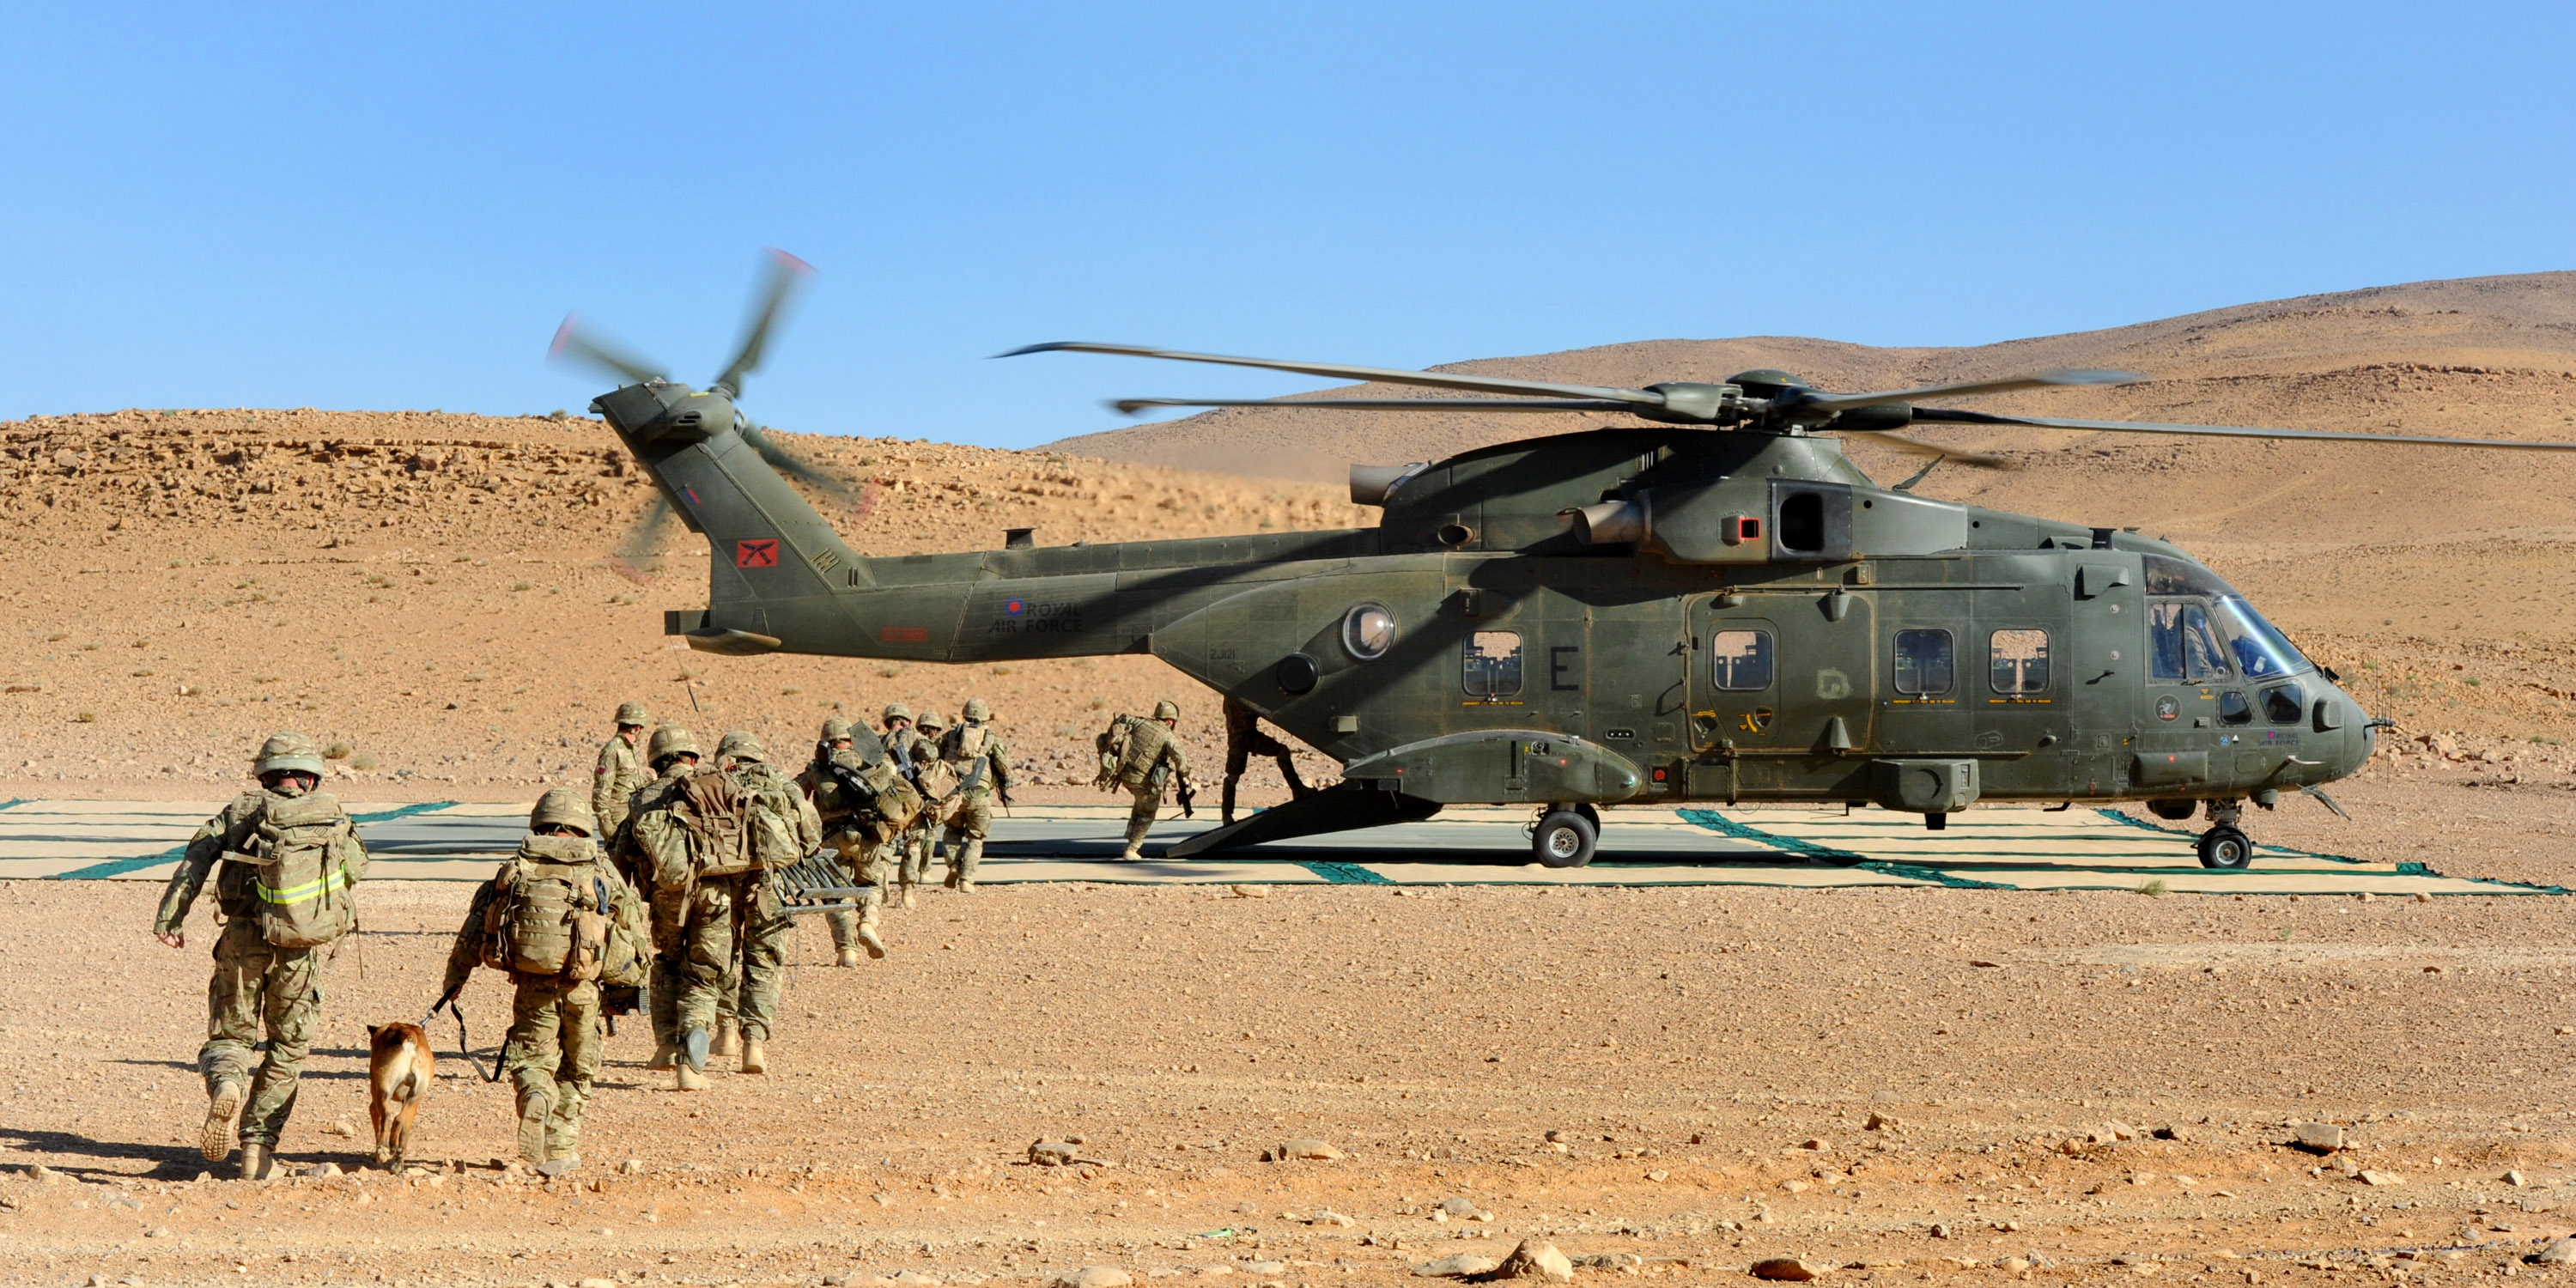 File:RAF Merlin Helicopters on Exercise Pashtung Vortex in